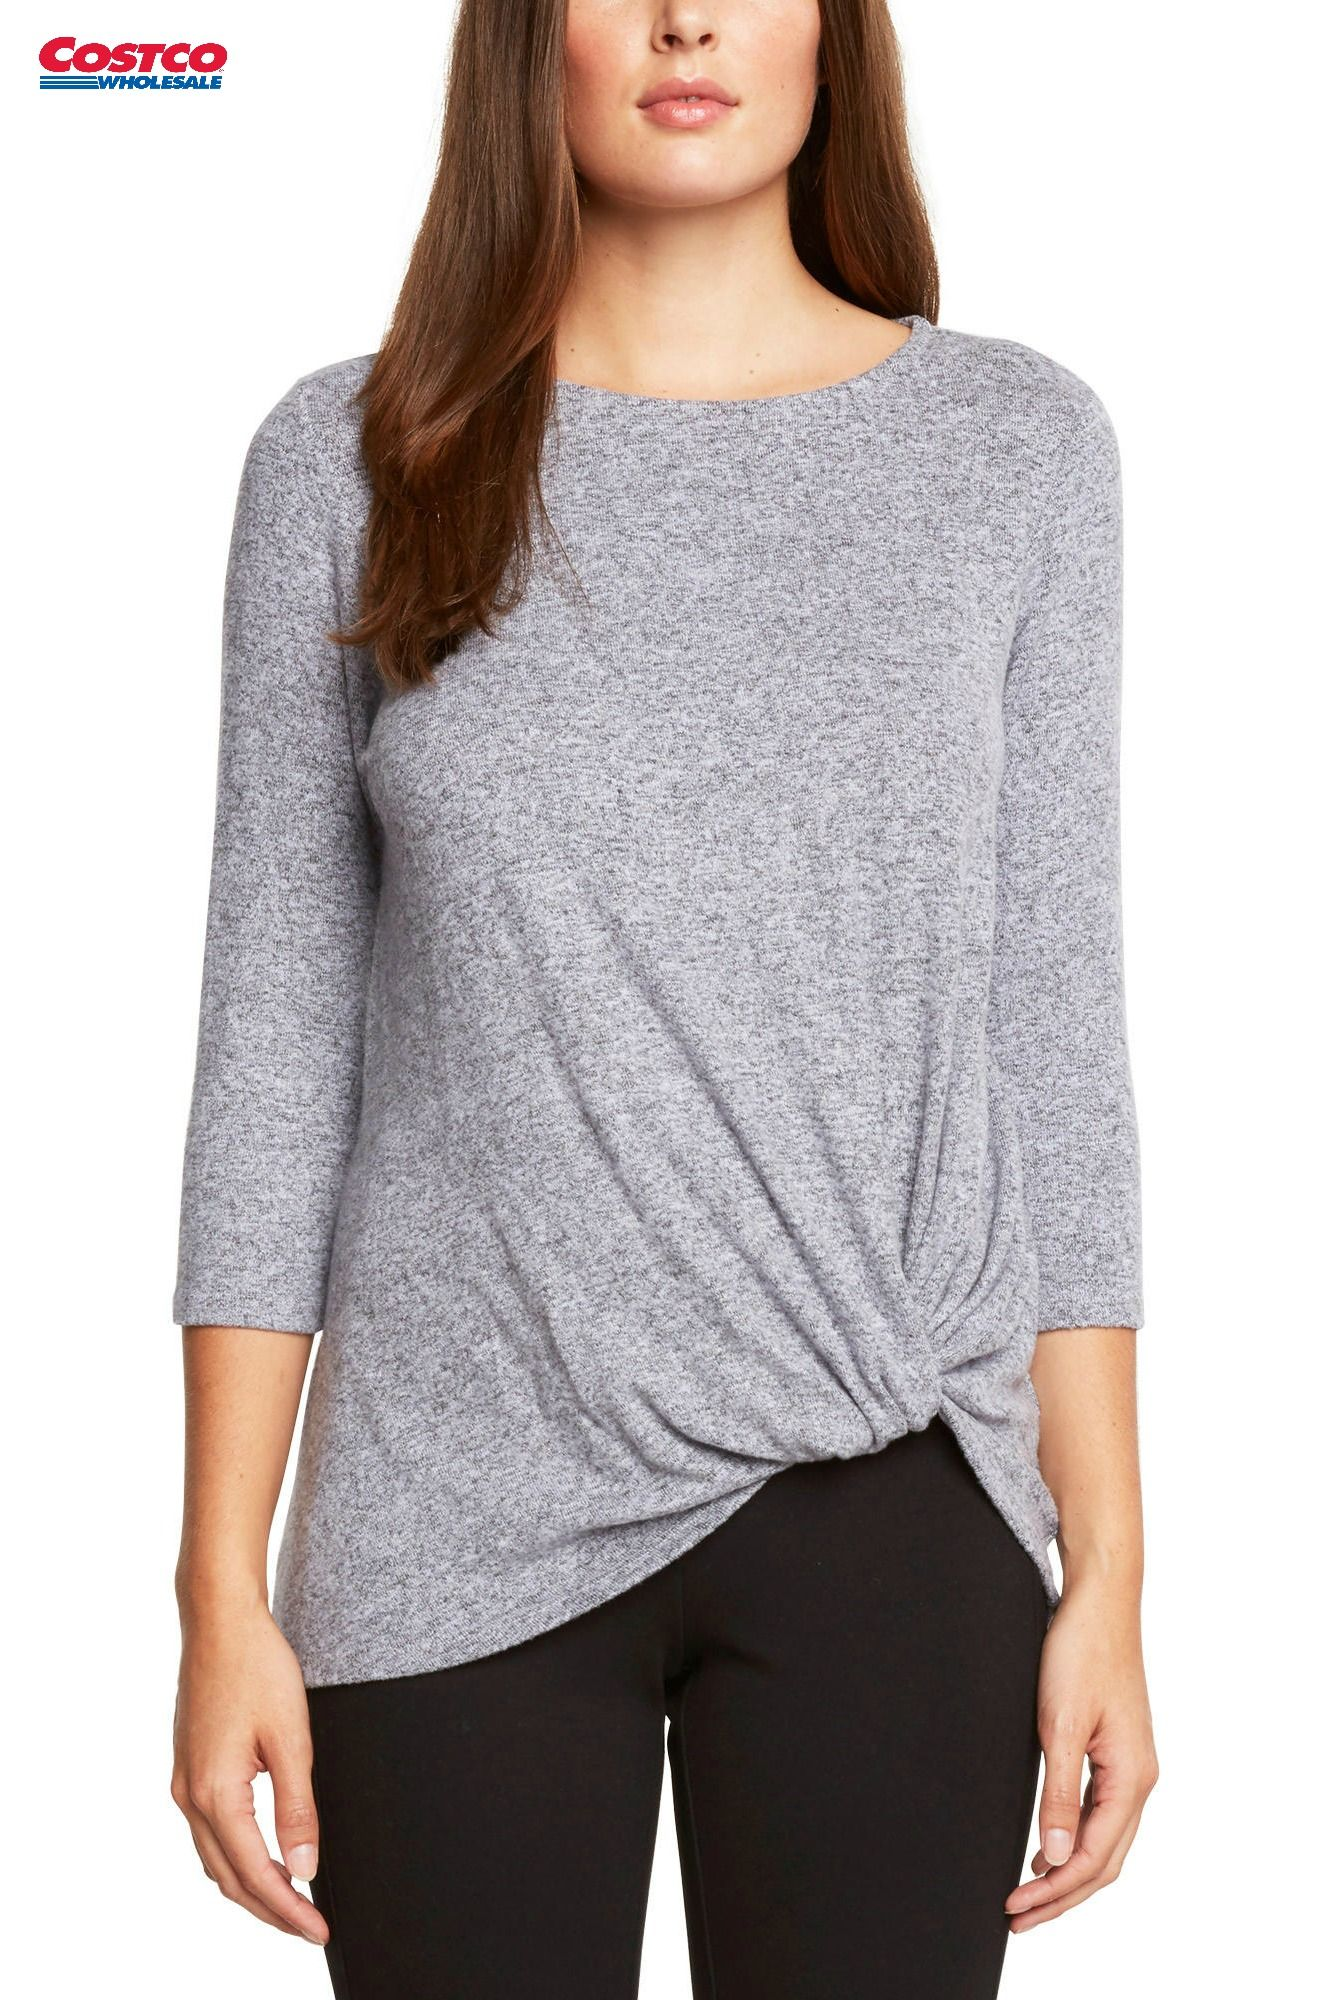 Matty M Ladies Knot Top At Costco With Three Different Colors And